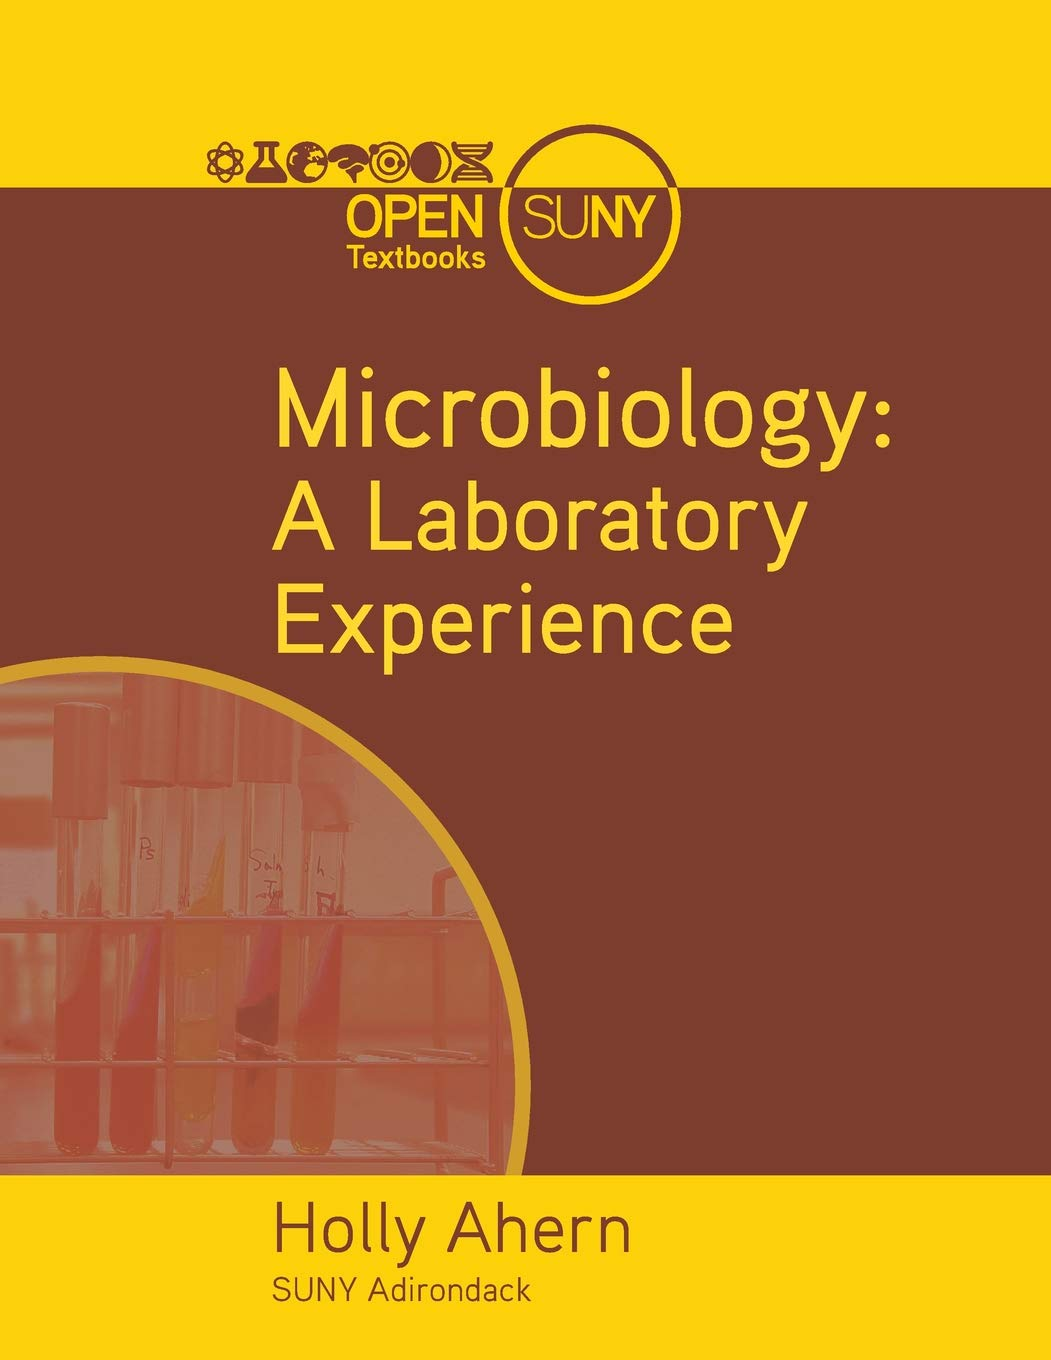 Microbiology: A Laboratory Experience: Holly Ahern